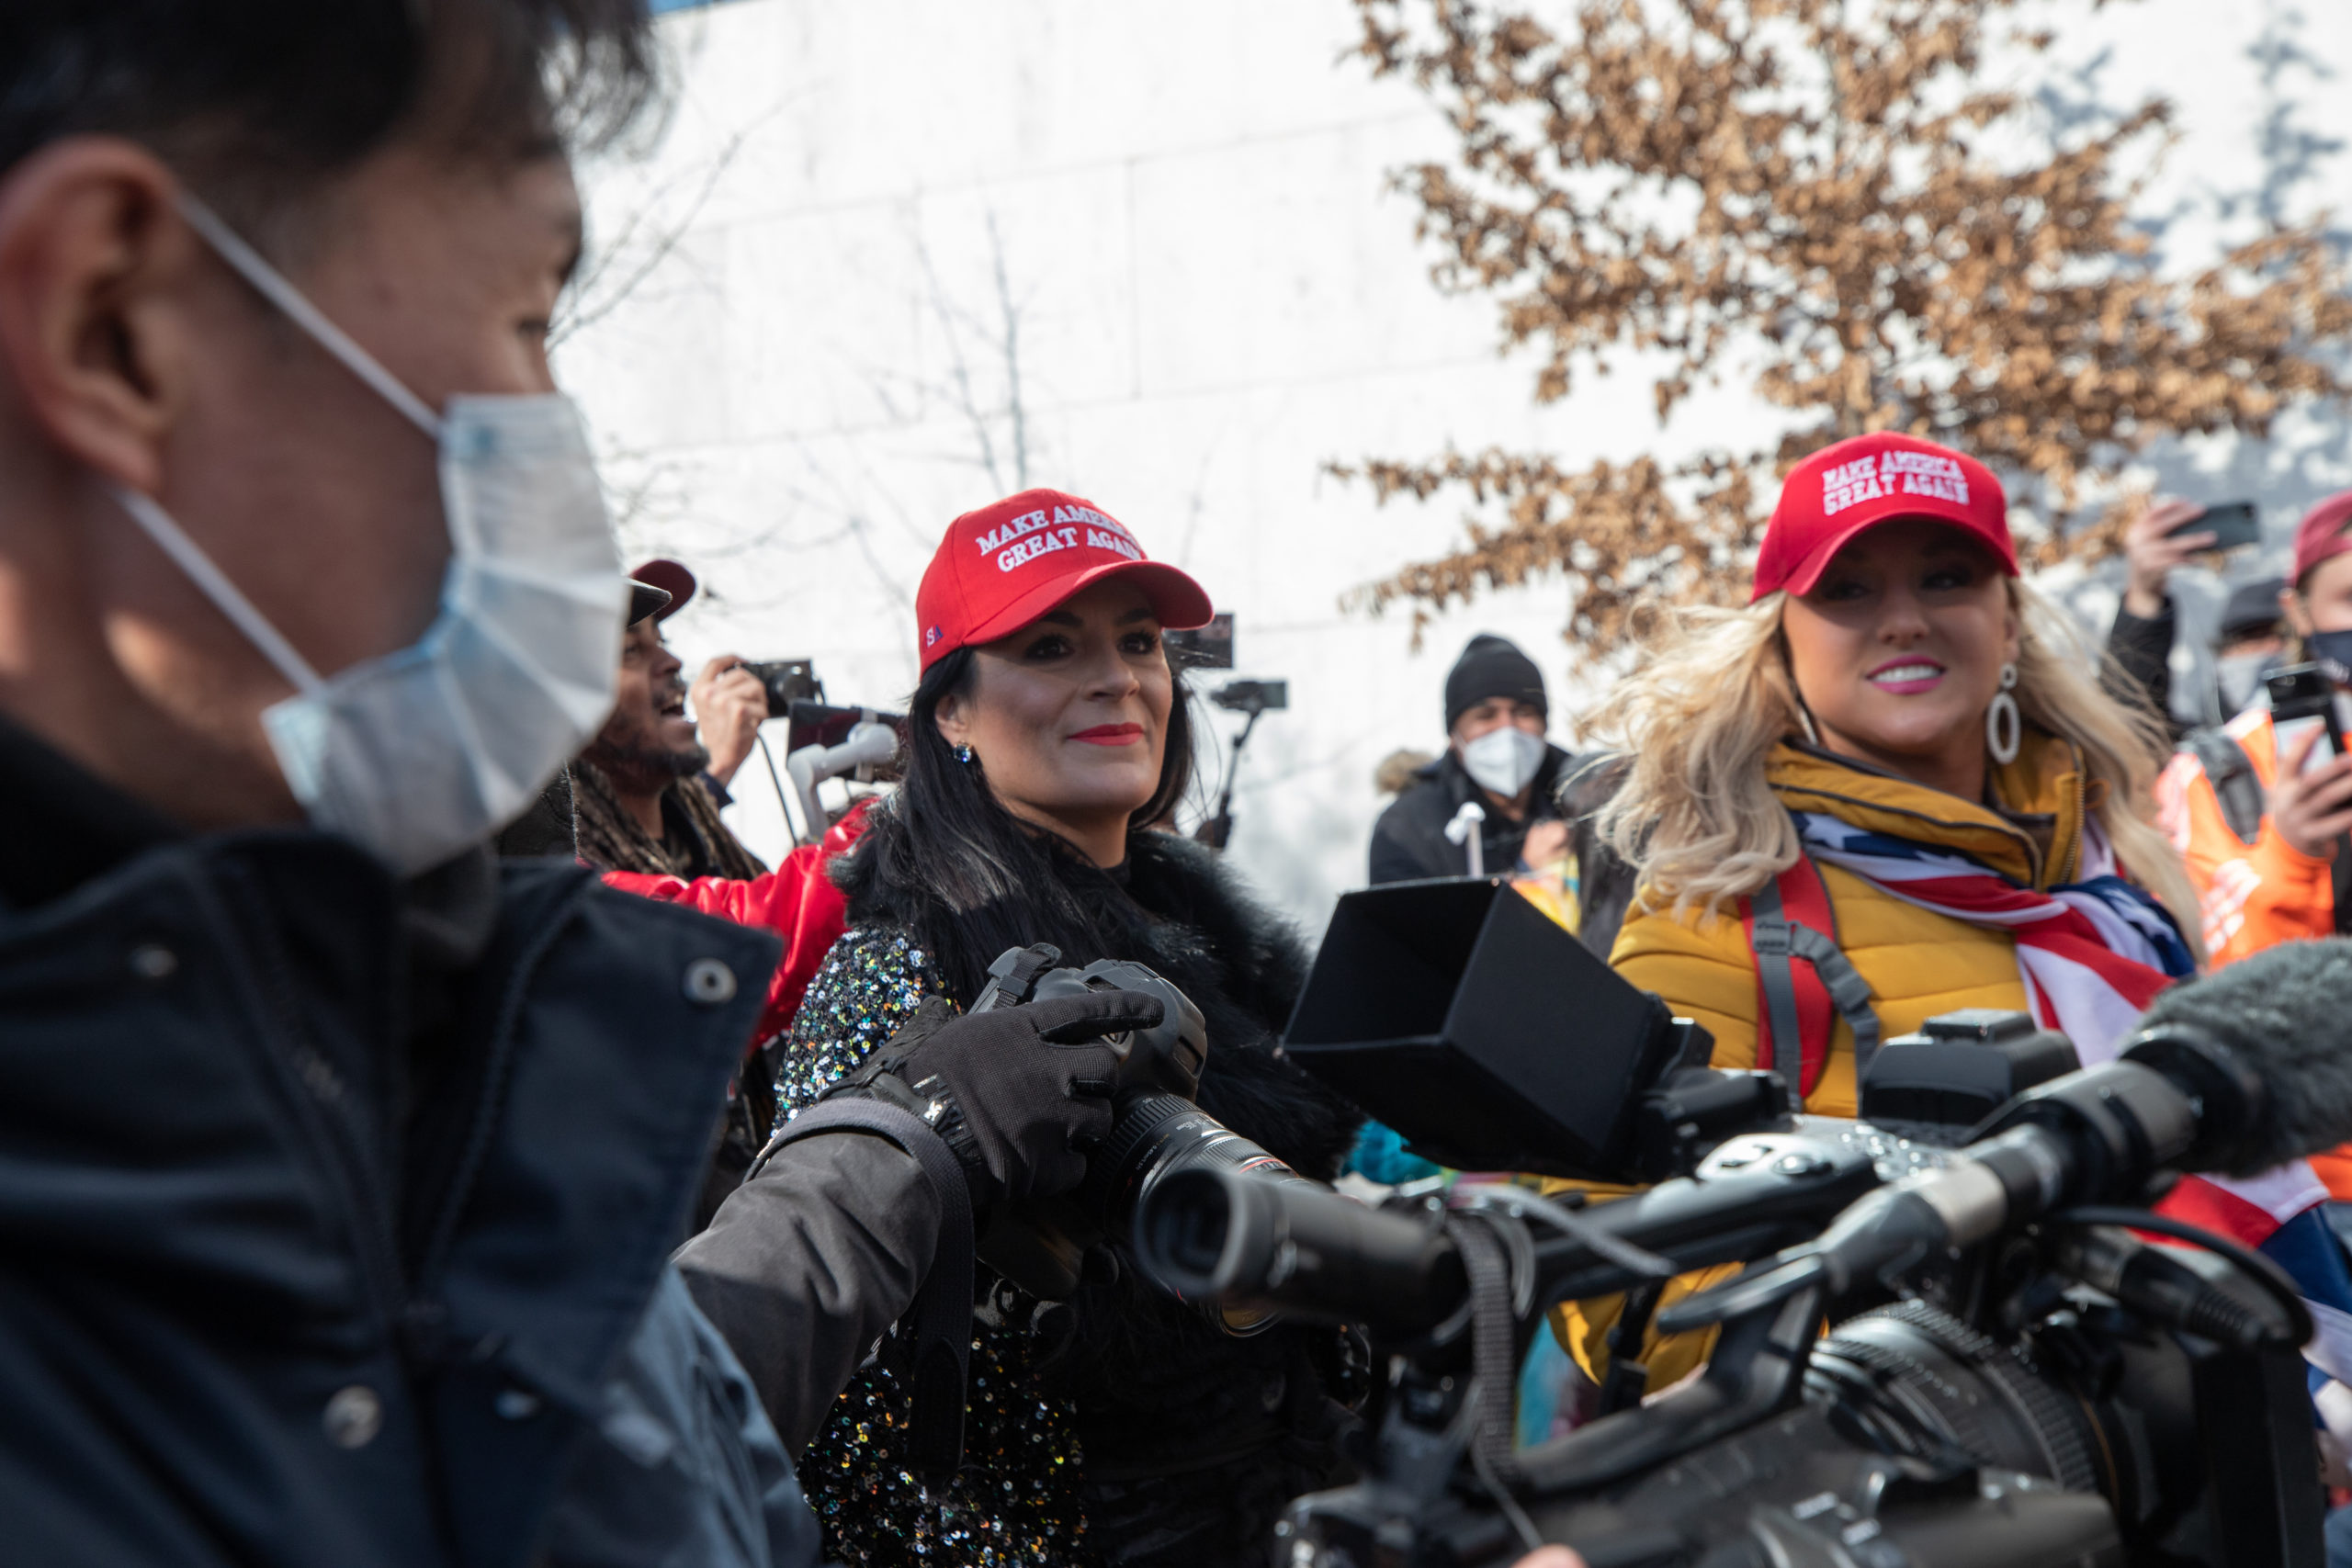 """Lindey-Anne Hopley wore a """"Make America Great Again"""" hat around Washington, D.C. on Jan. 20, 2021. (Kaylee Greenlee - Daily Caller News Foundation)"""